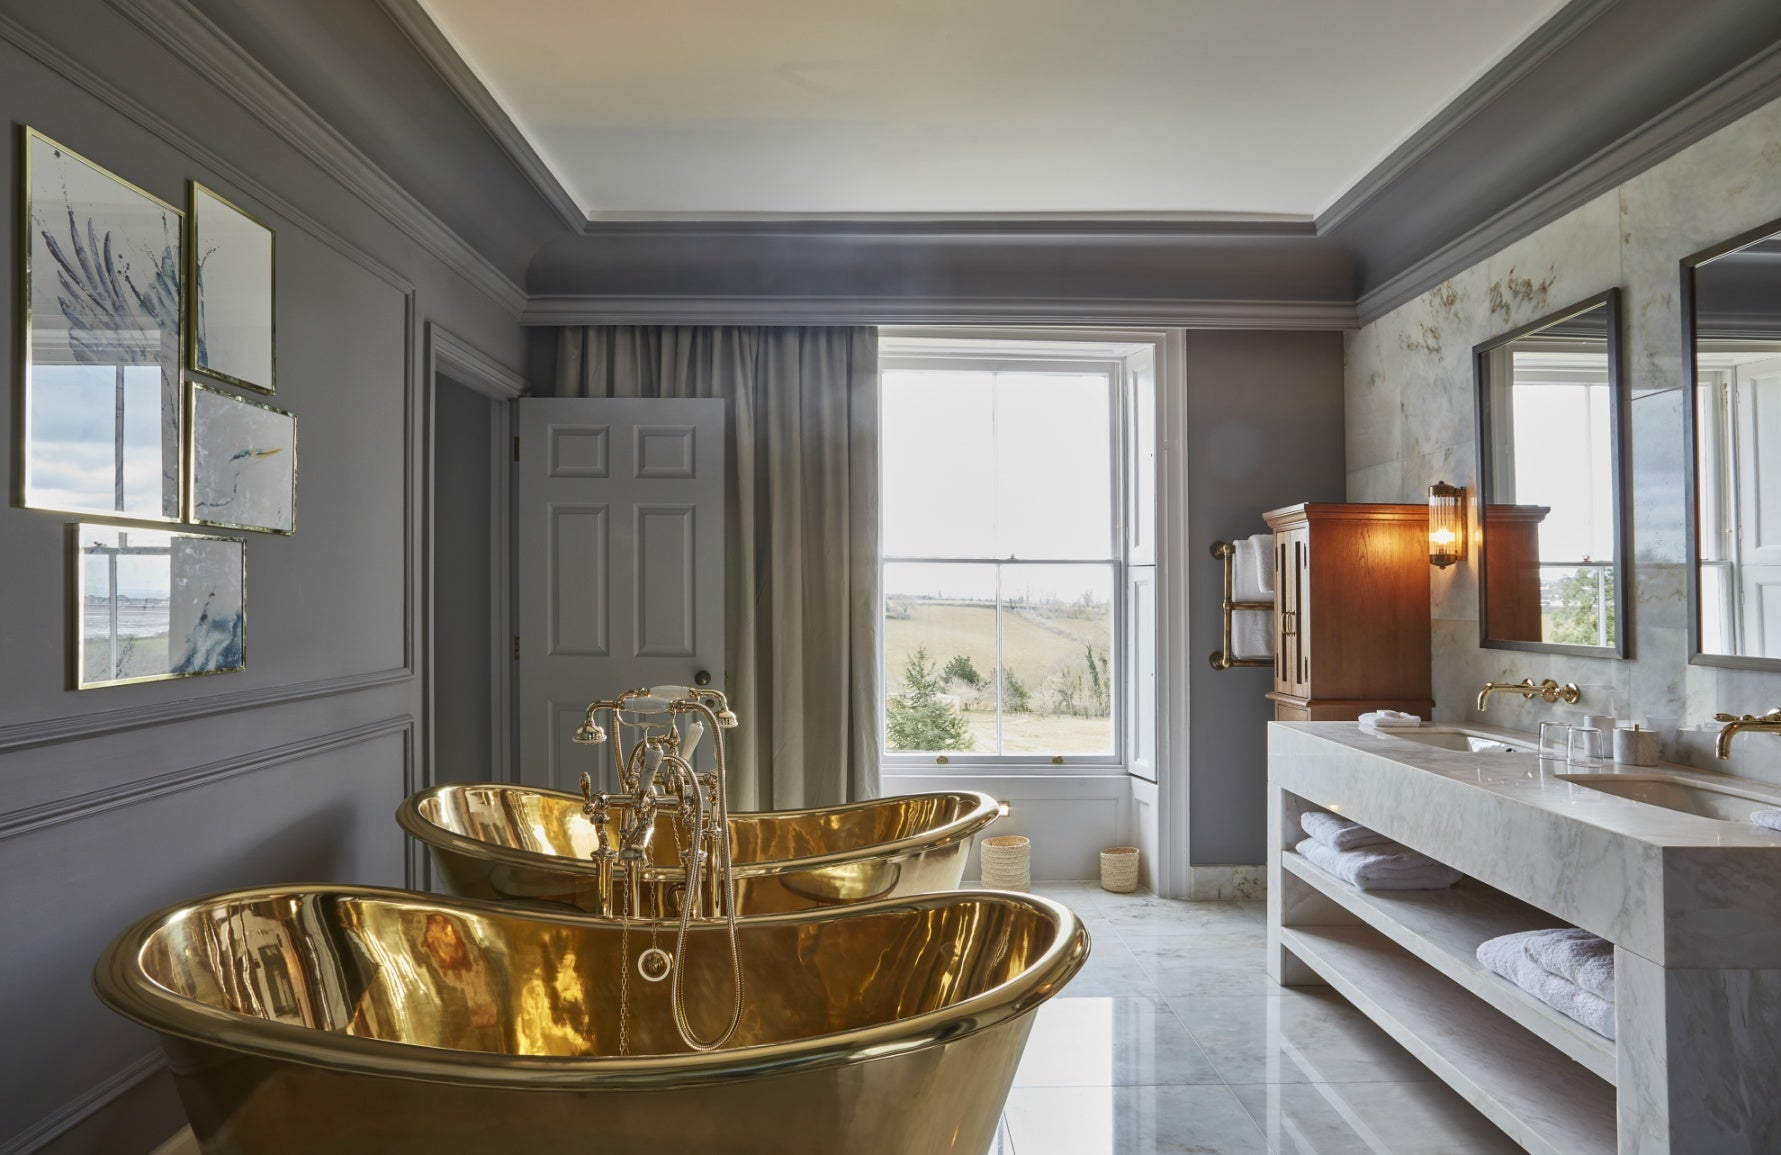 Top Country Hotels for the Bank Holiday Weekend   Lympstone Manor   LuxDeco.com